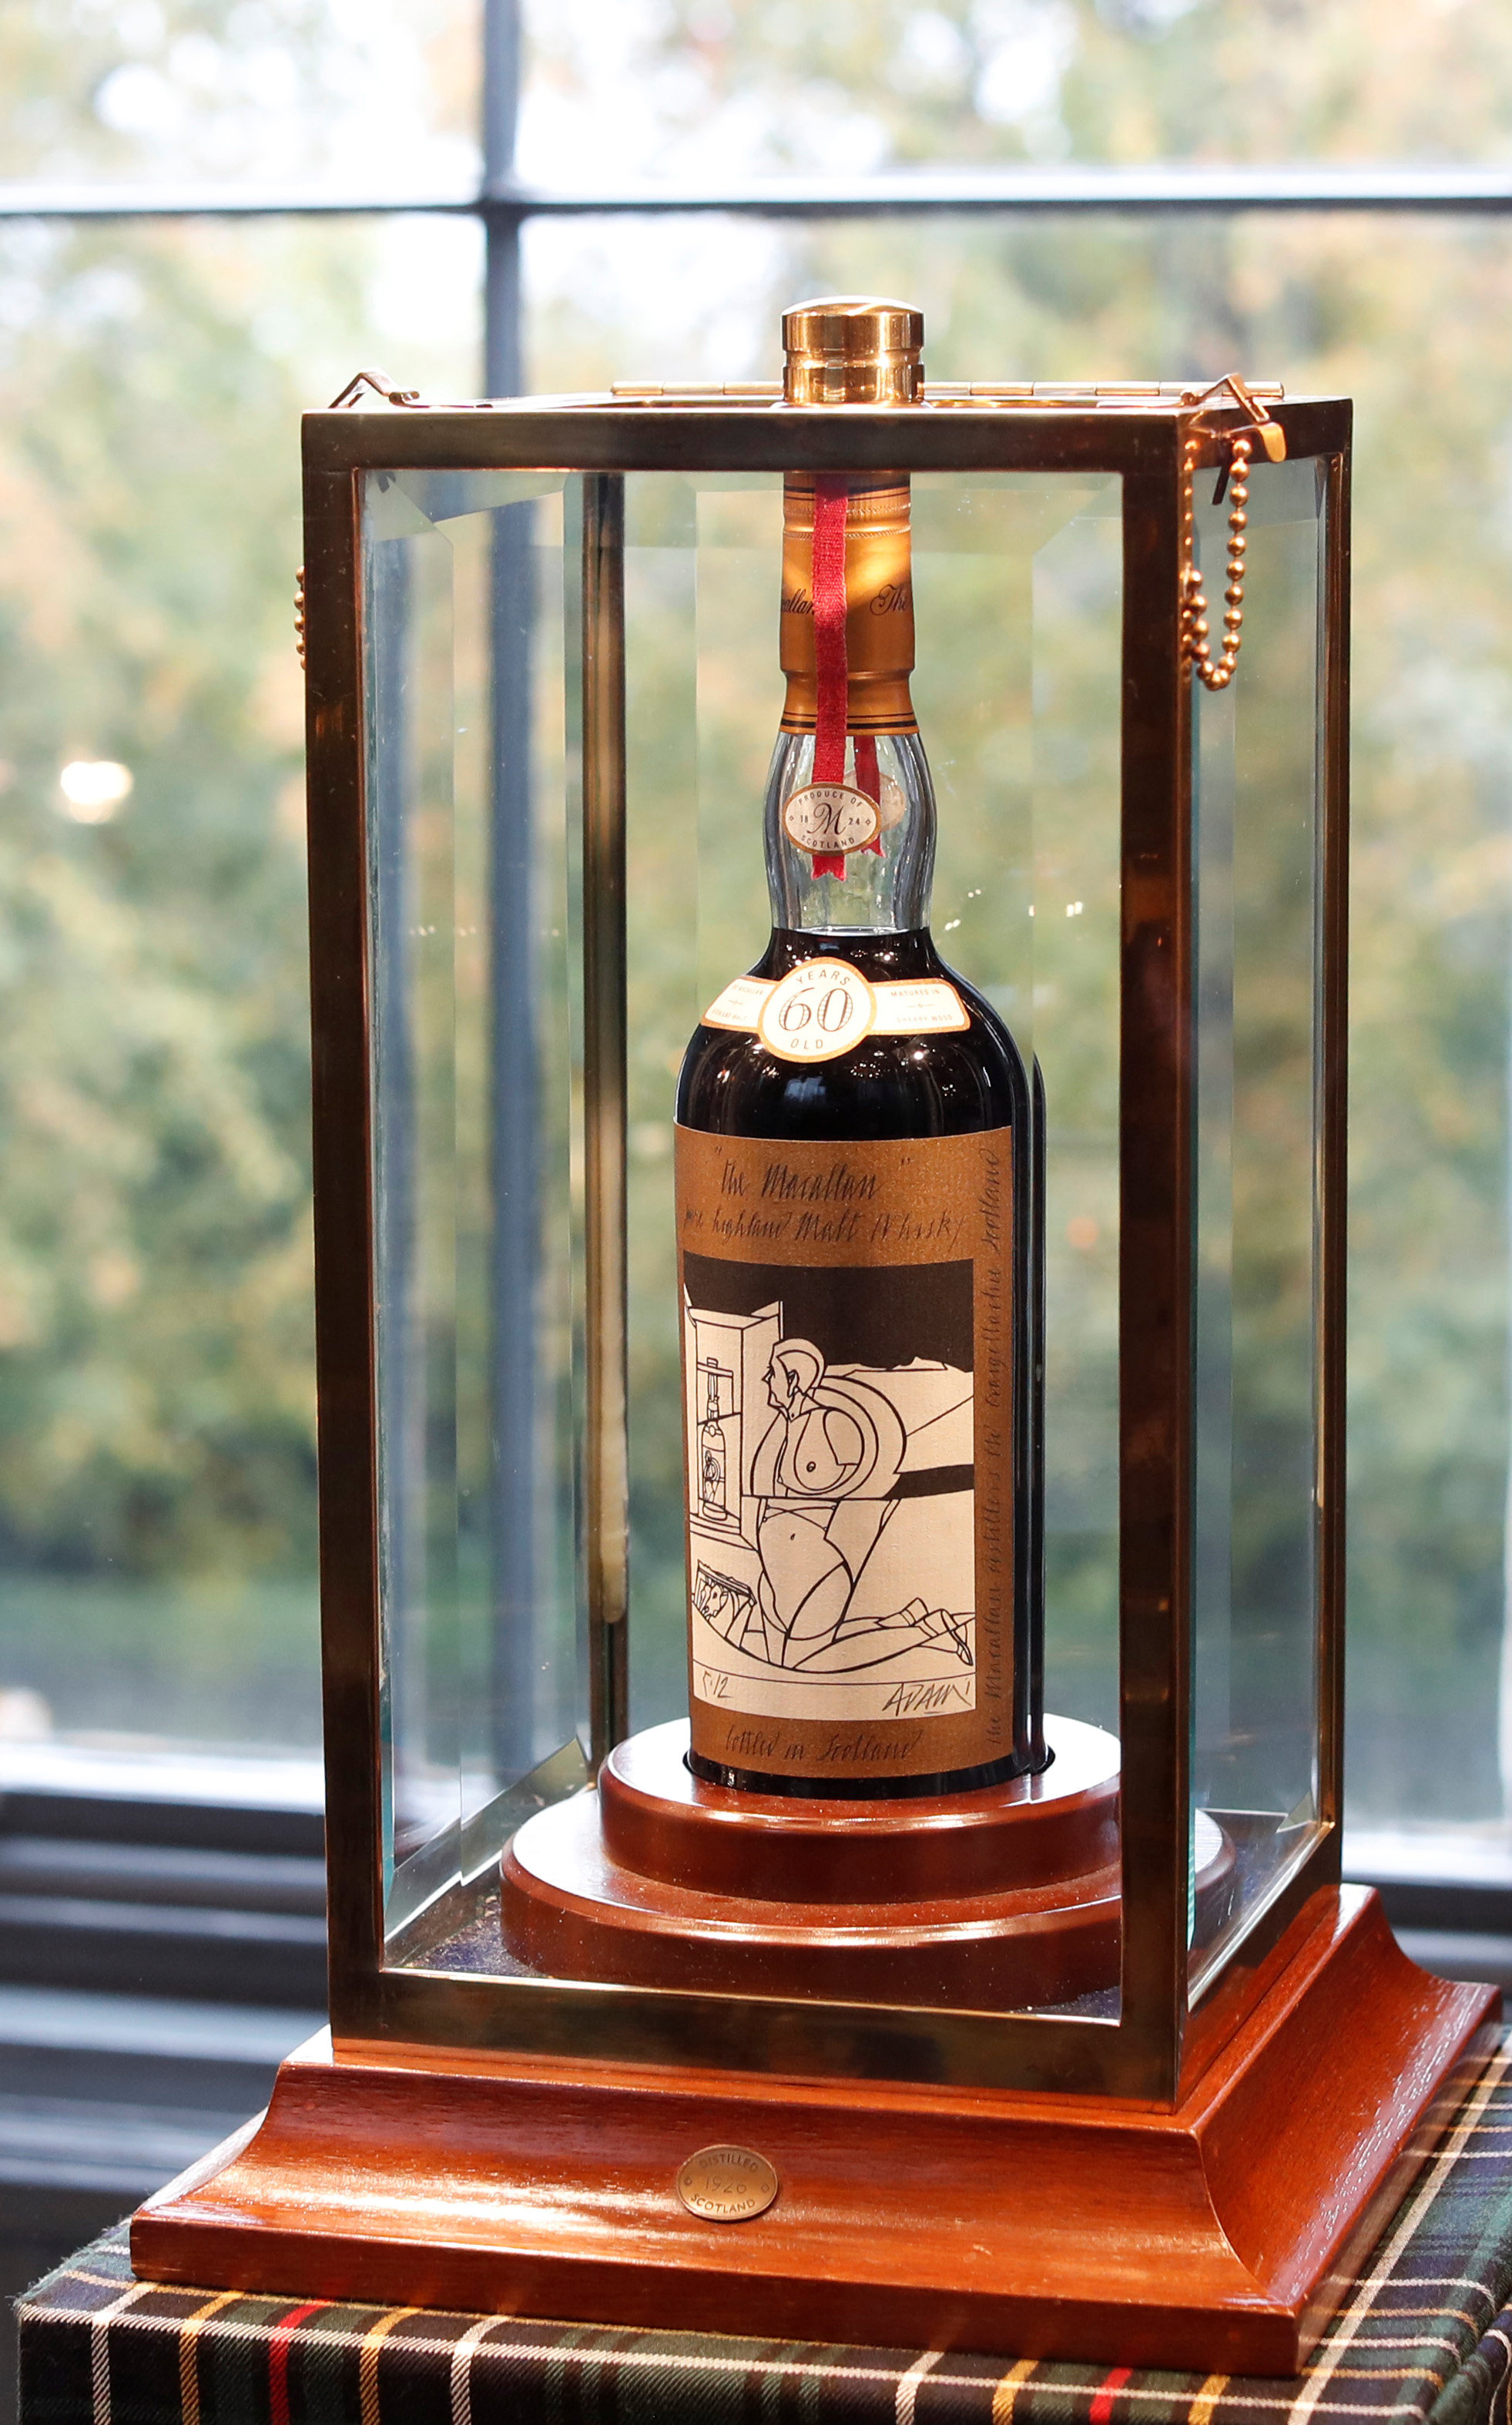 A 60-year old The Macallan Valerio Adami 1926 is seen in a glass case after it was auctioned for a record amount at Bonhams in Edinburgh, Scotland